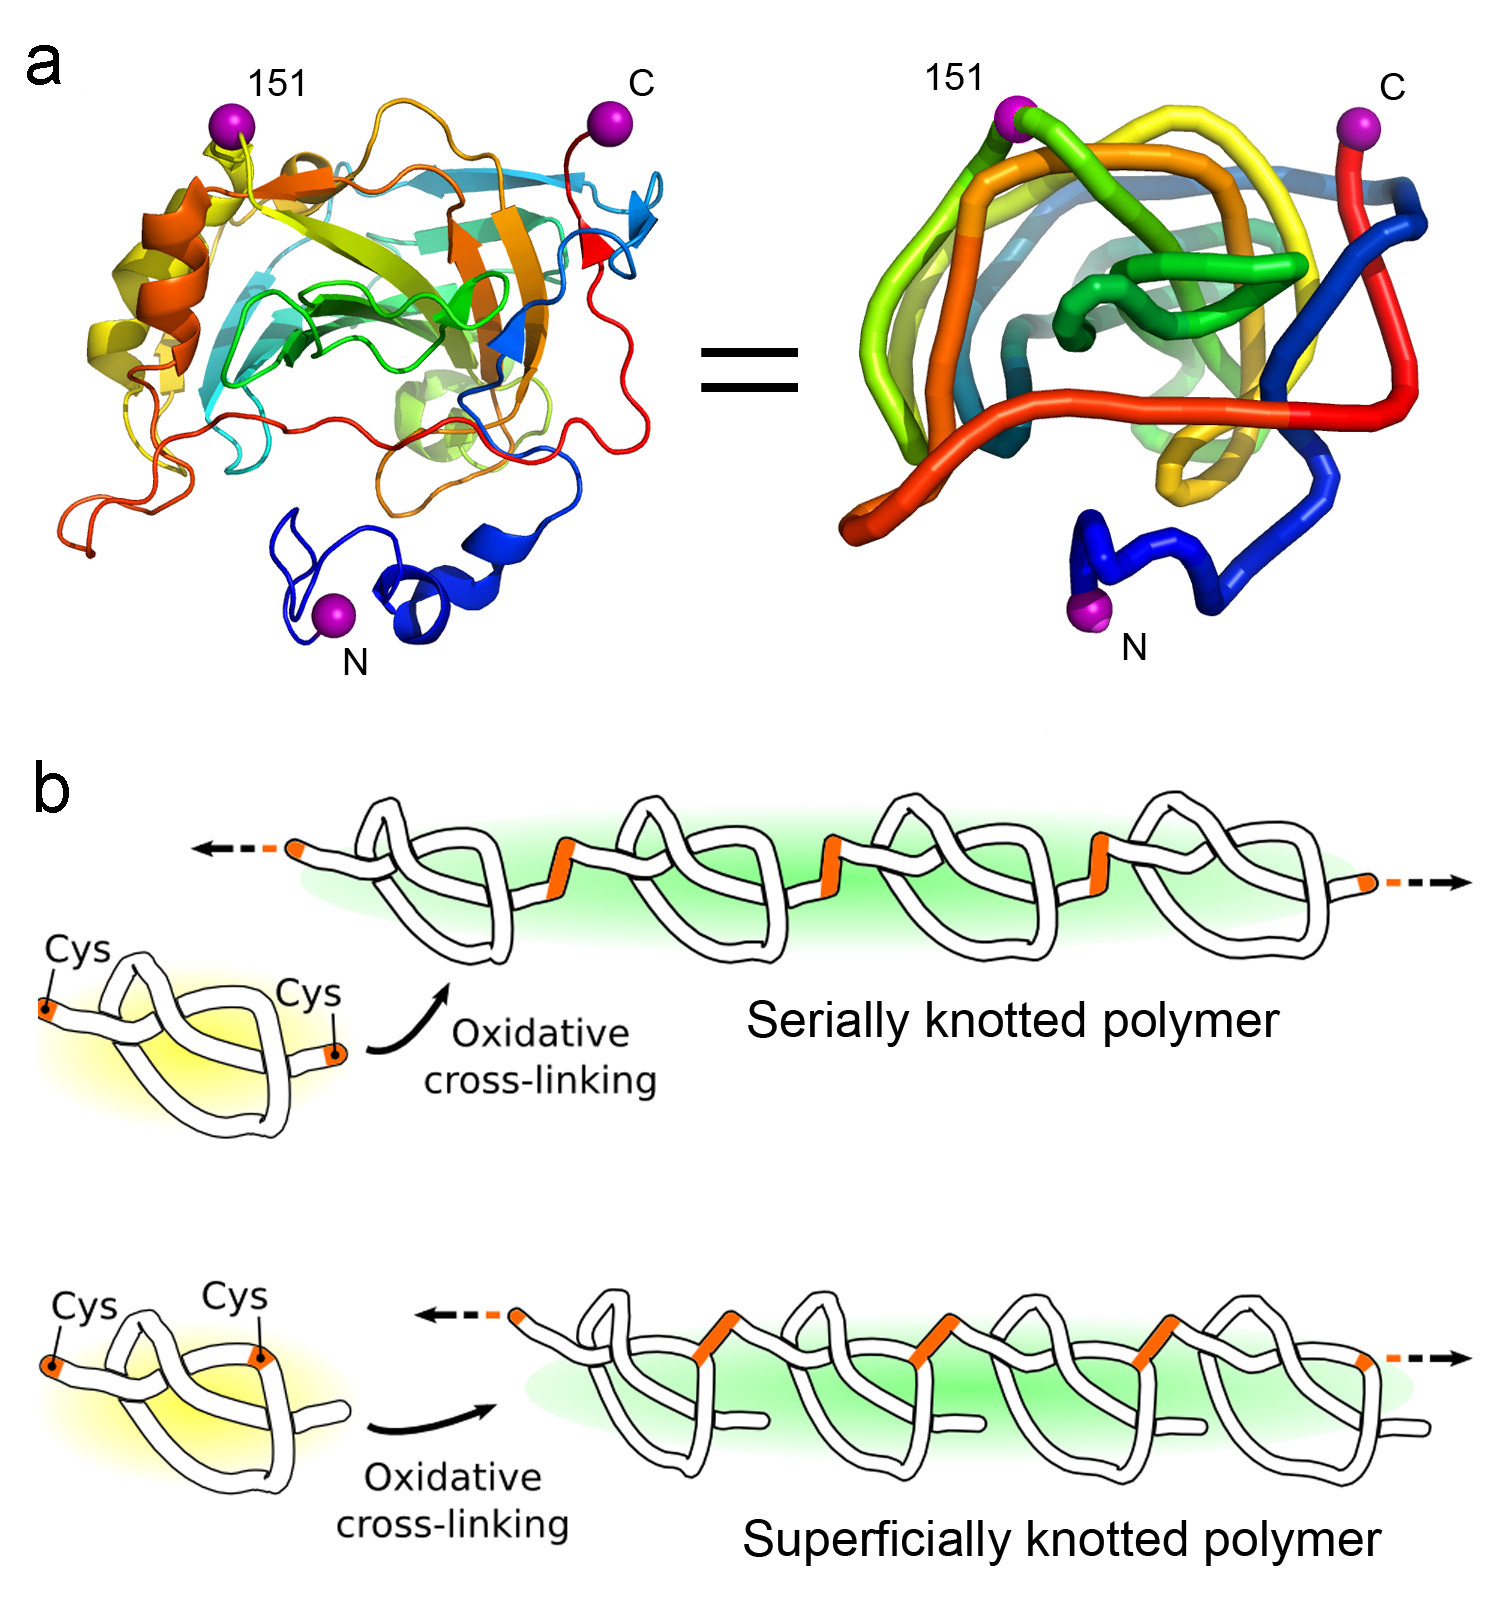 Polymerizing a shallowly knotted protein produces a series of deep knots, which stabilizes the protein compared to the control. (Adapted from Sayre, et al.)